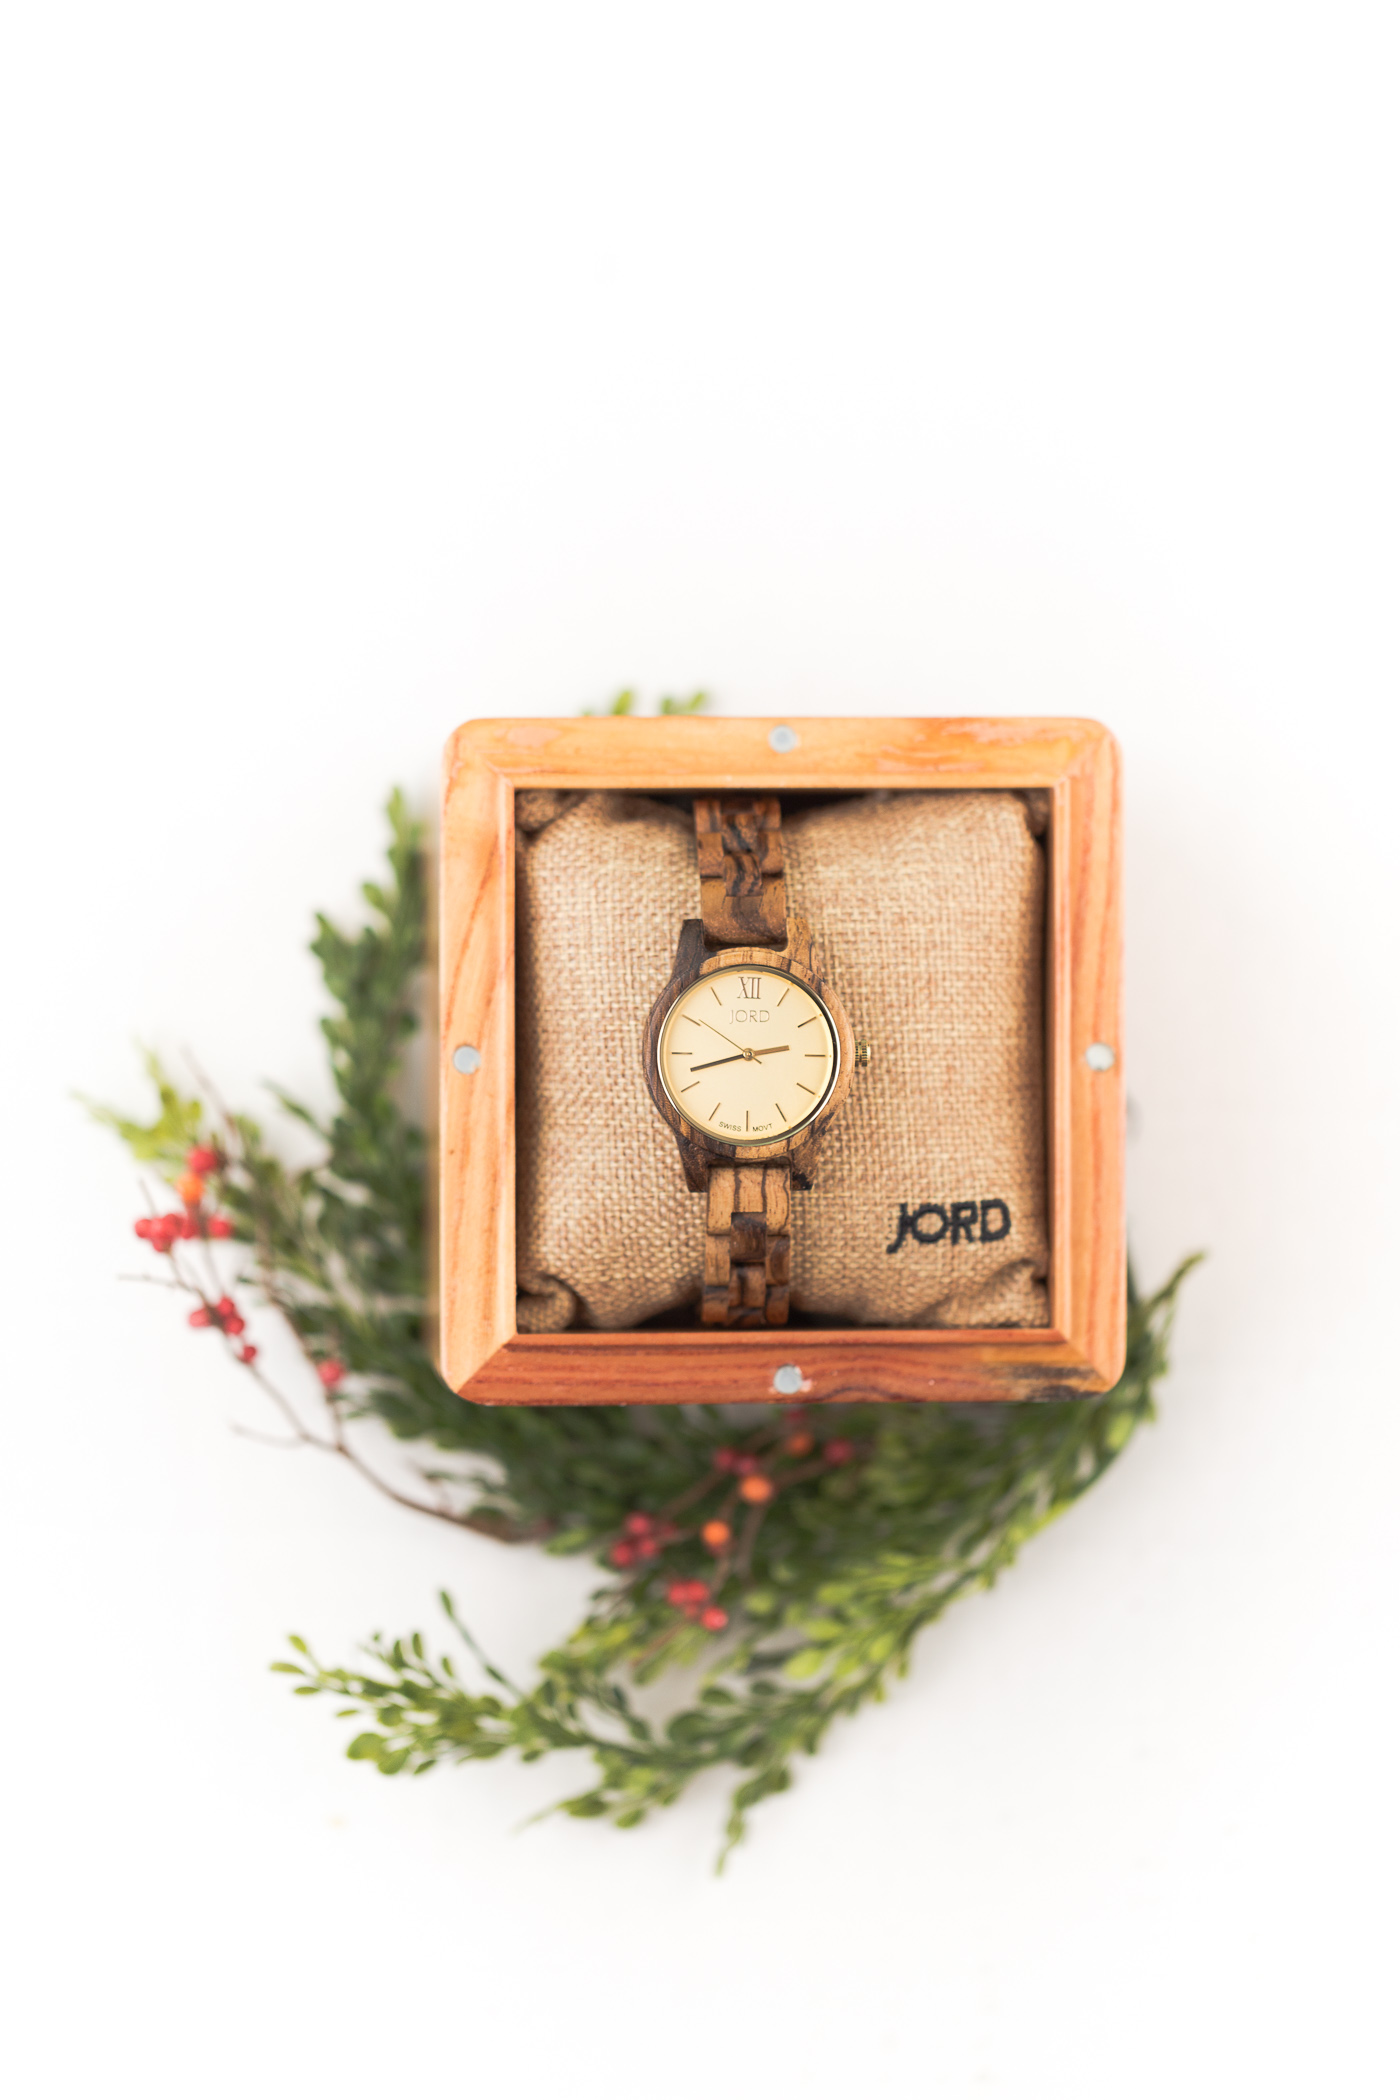 Holiday Gift Guide-Pretty Accessories: earrings, women's watch and nail polish are just a few of my favorite accessories that the ladies in your life are bound to en